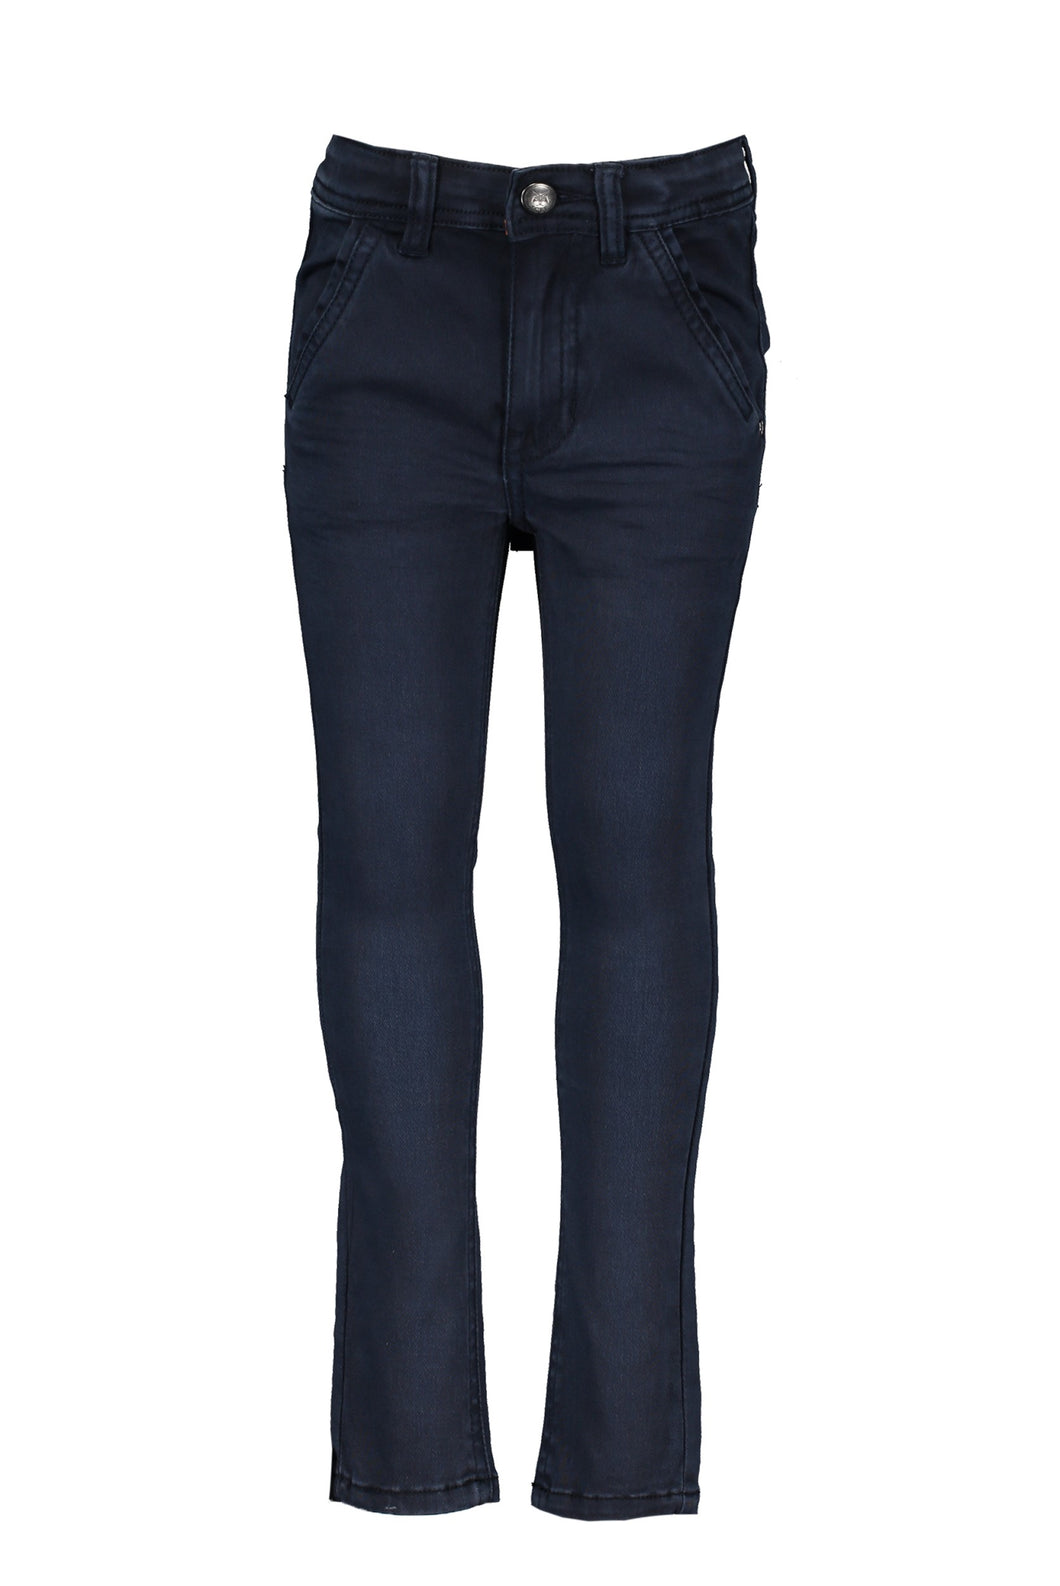 Navy Blue Cotton Chinos